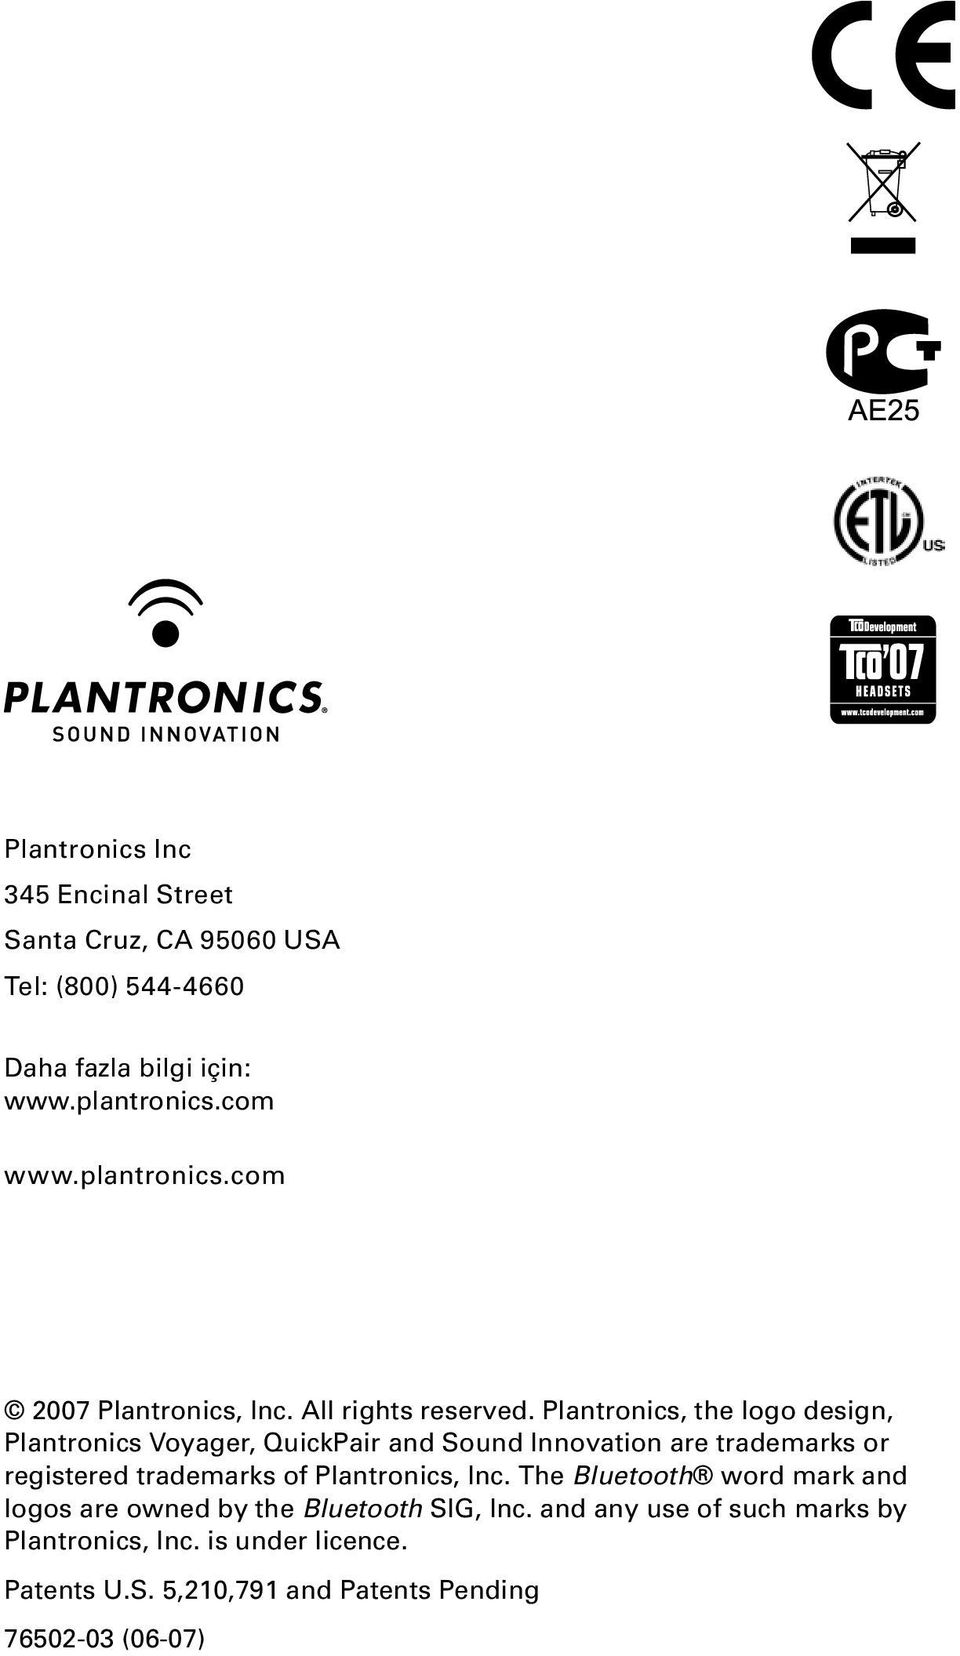 Plantronics, the logo design, Plantronics Voyager, QuickPair and Sound Innovation are trademarks or registered trademarks of